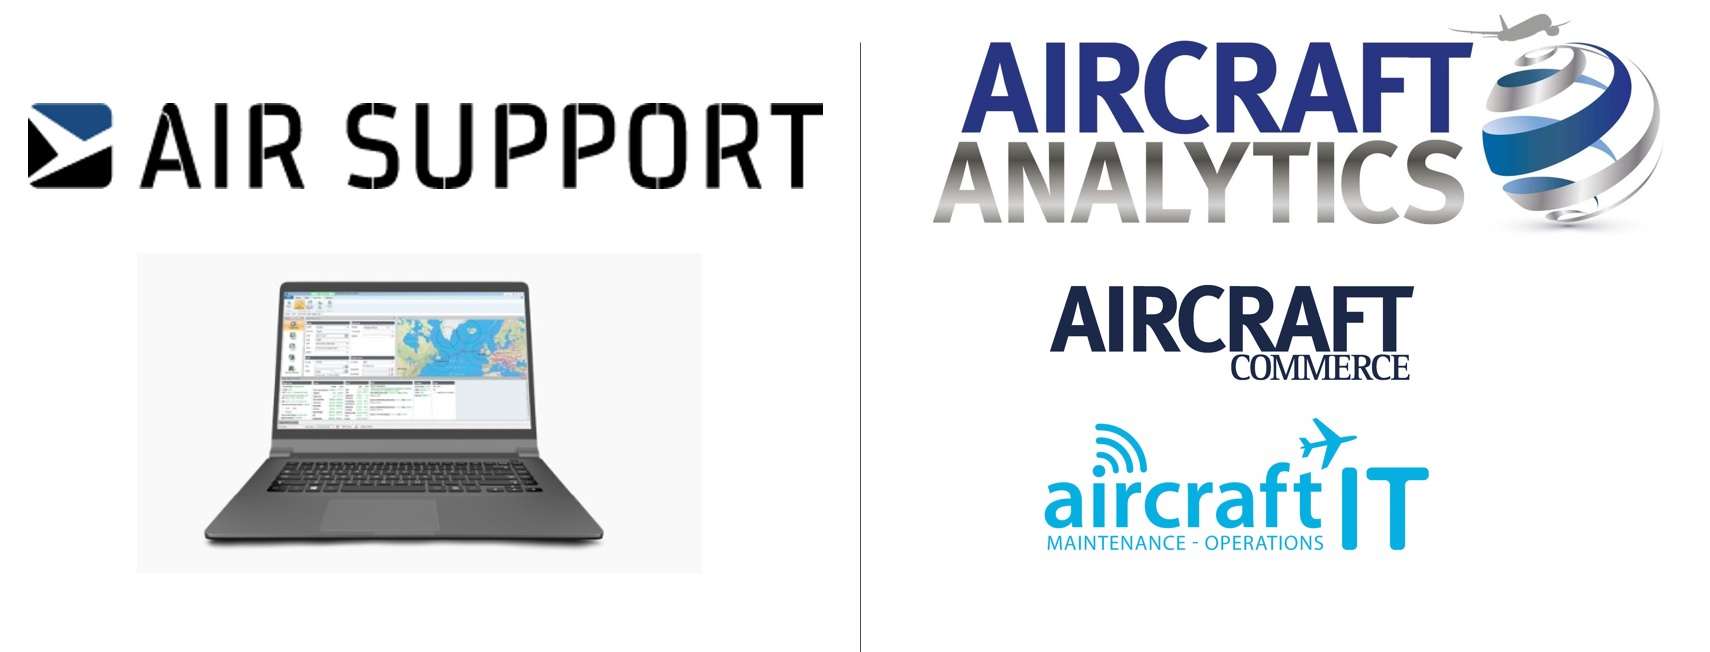 Aircraft Analytics partners with Air Support to use its world-class PPS Flight Planning System (PPS) to power interactive digital aircraft data tools.